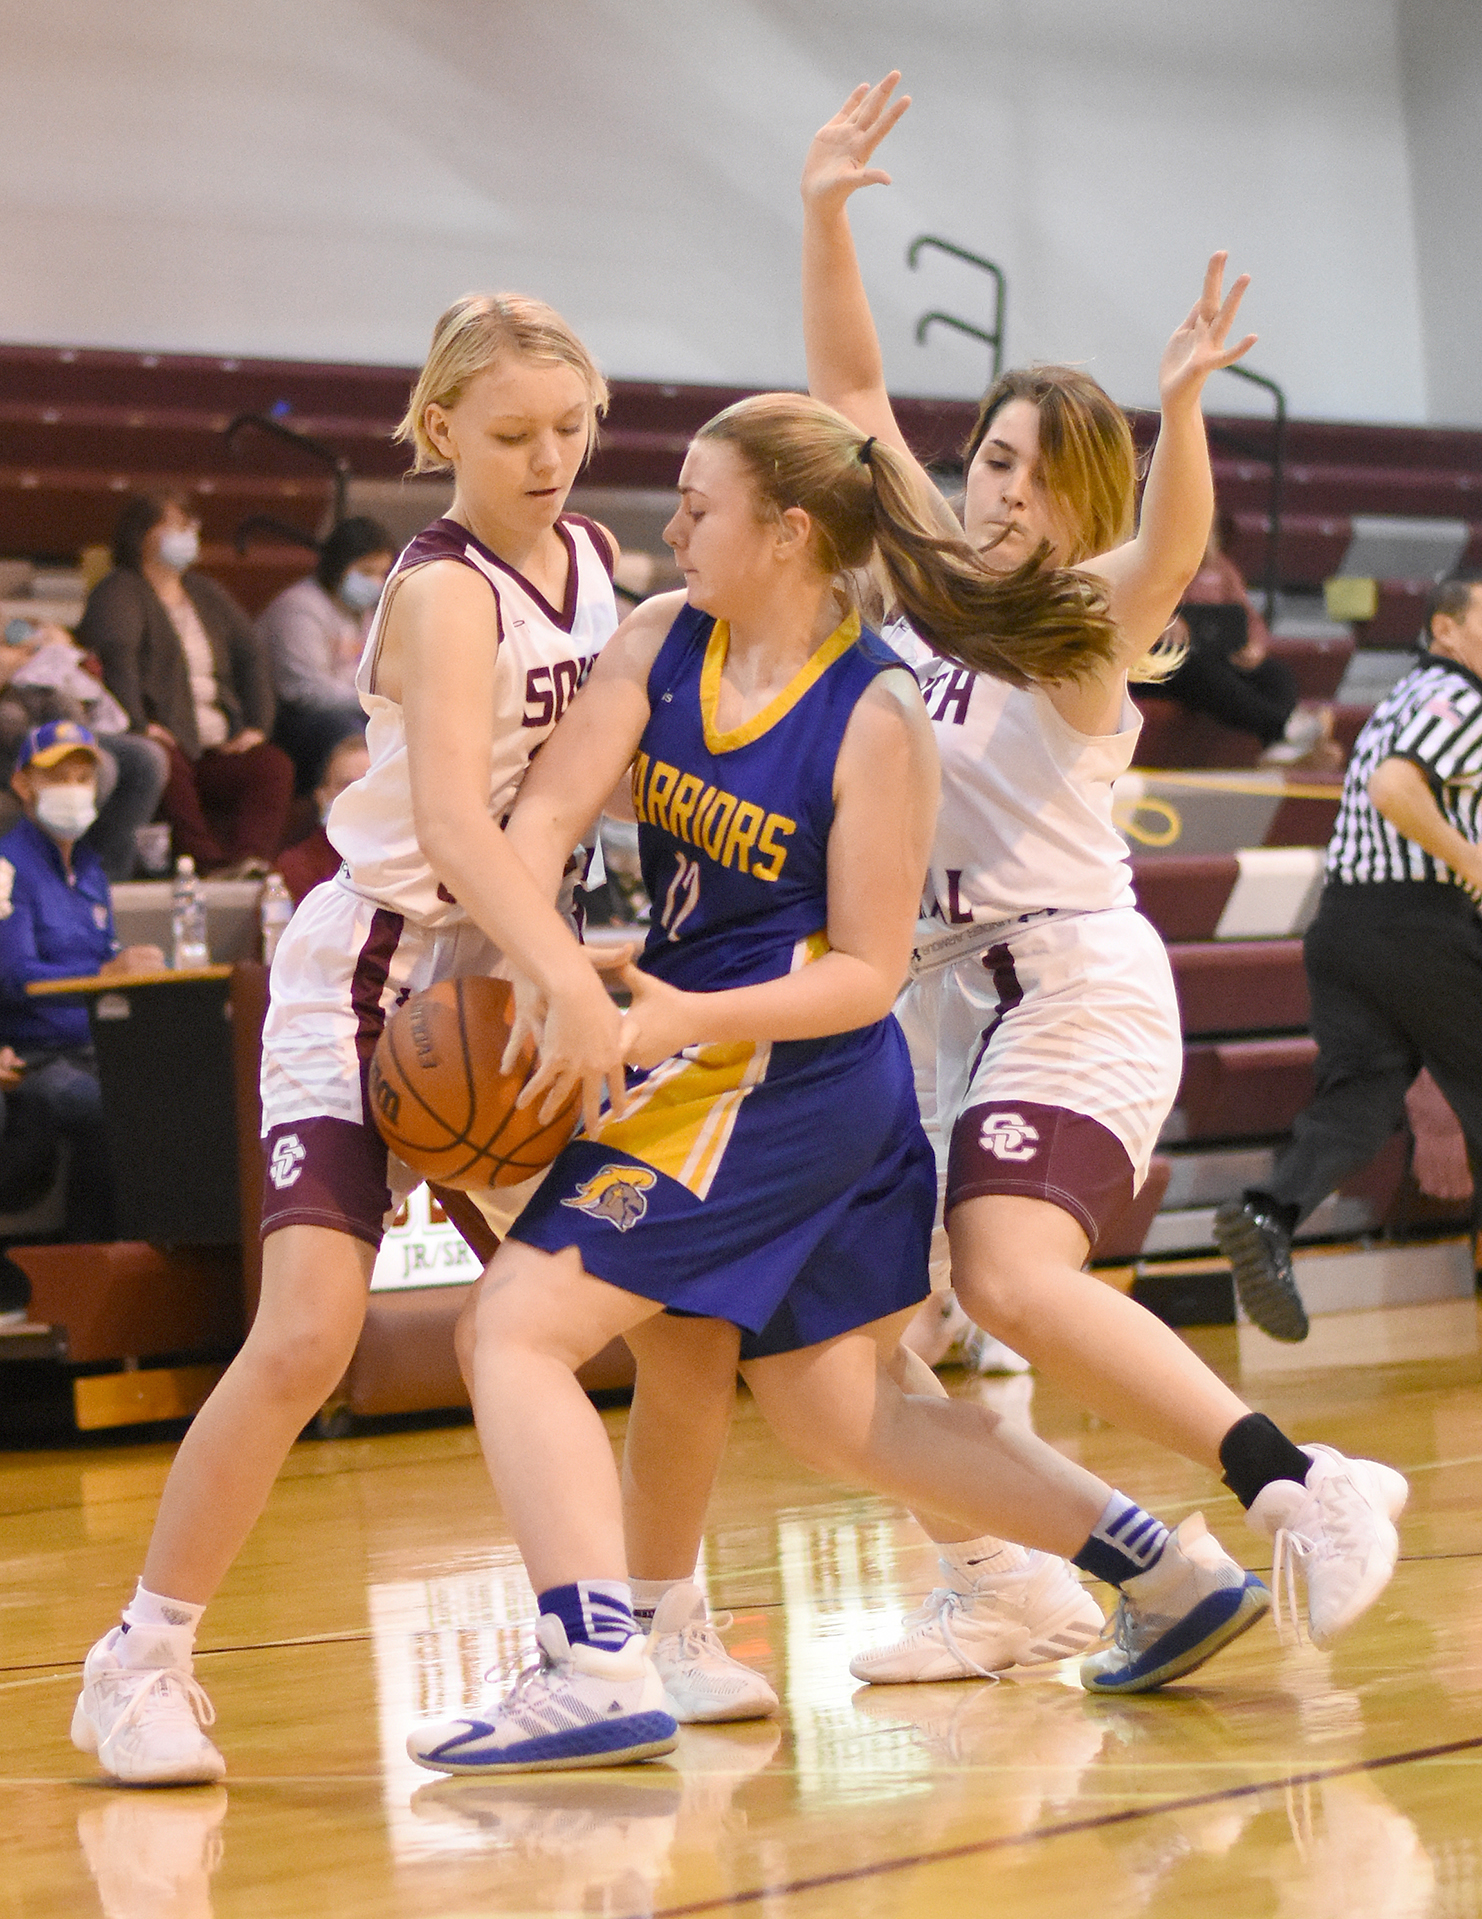 Lady Rebels overpower CAI